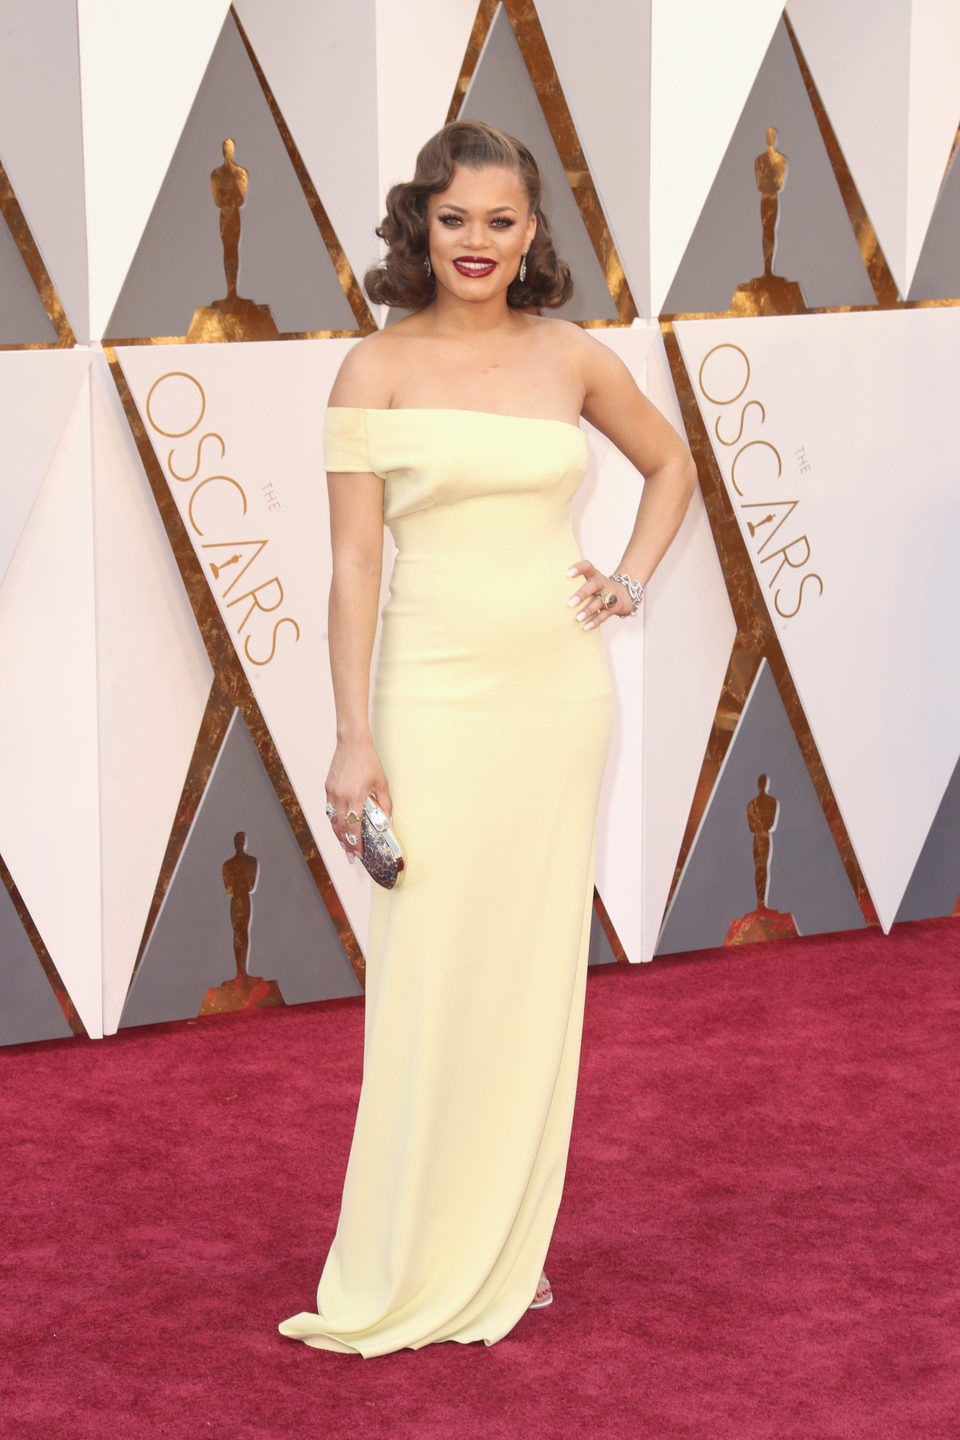 Andra Day at the Oscars 2016 red carpet